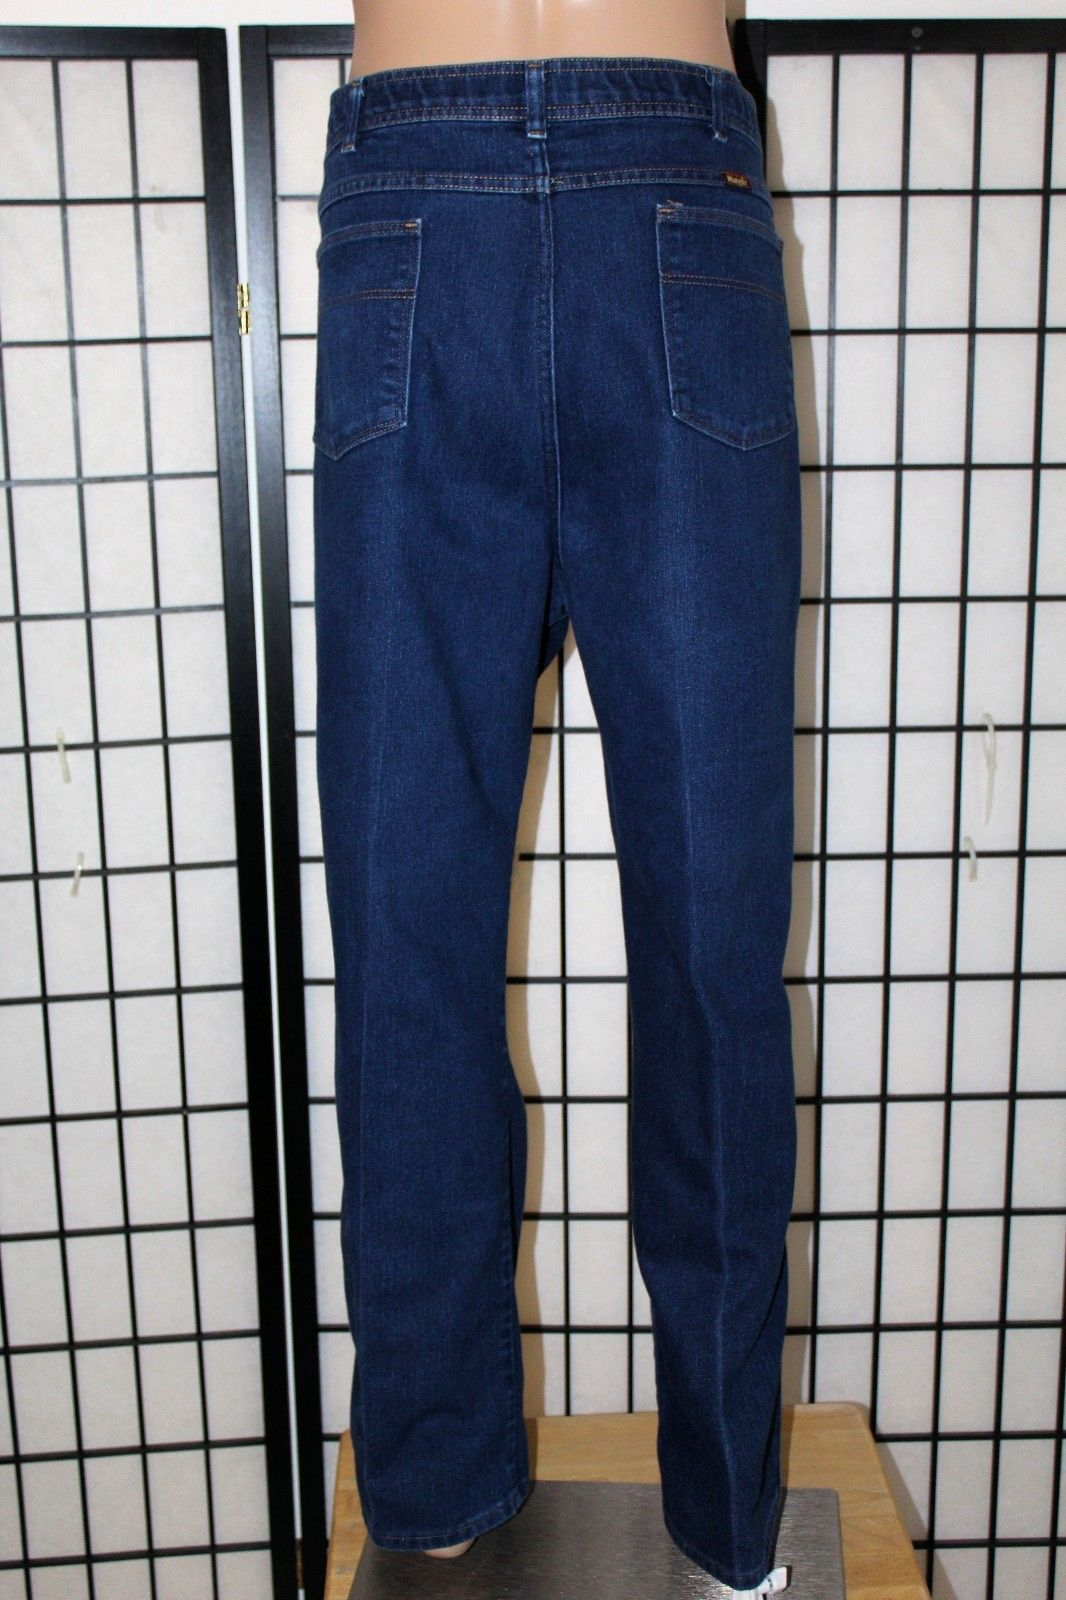 4a5e5679635 WRANGLER Comfort Solutions Men s 46x32 and 50 similar items. 57